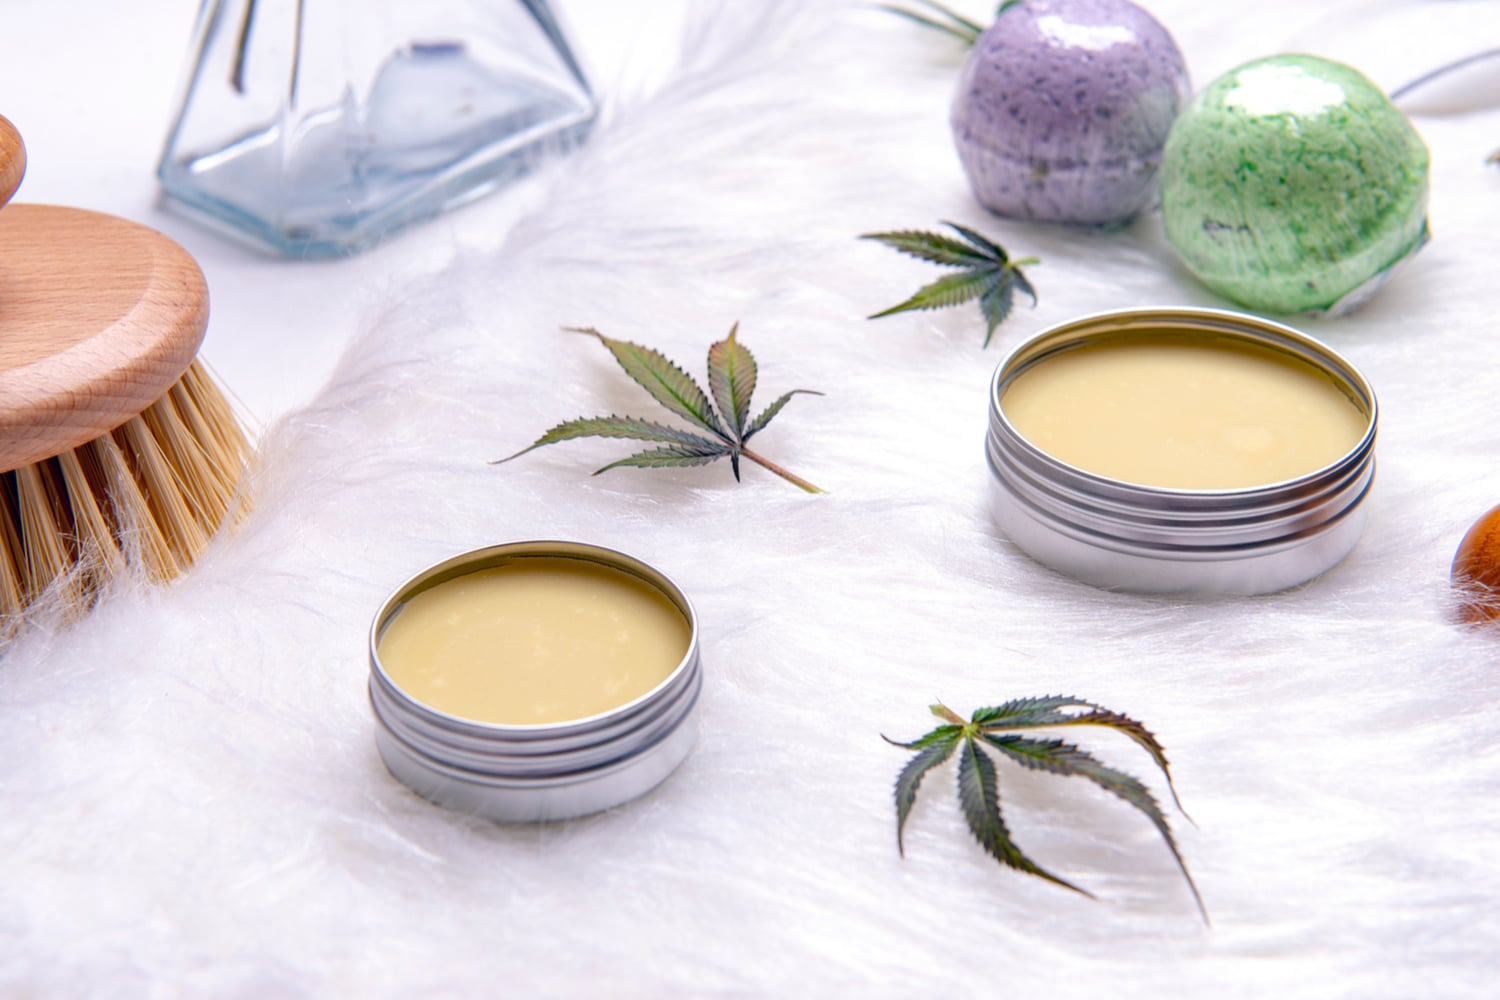 cannabis topicals with bath balms and brush